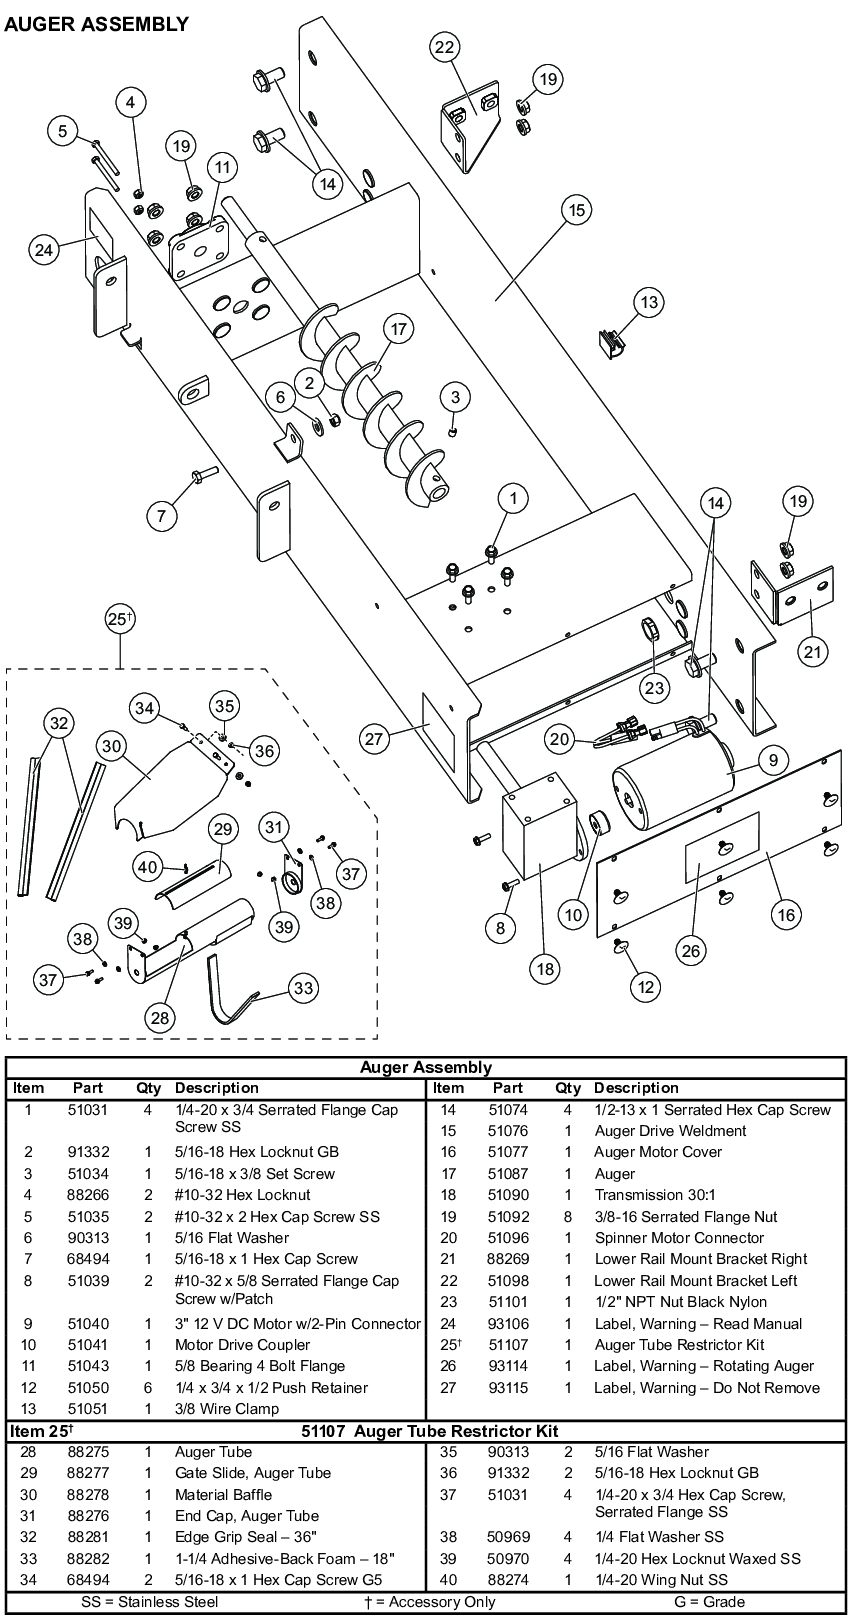 Western Tornado UTV Auger Parts Diagram